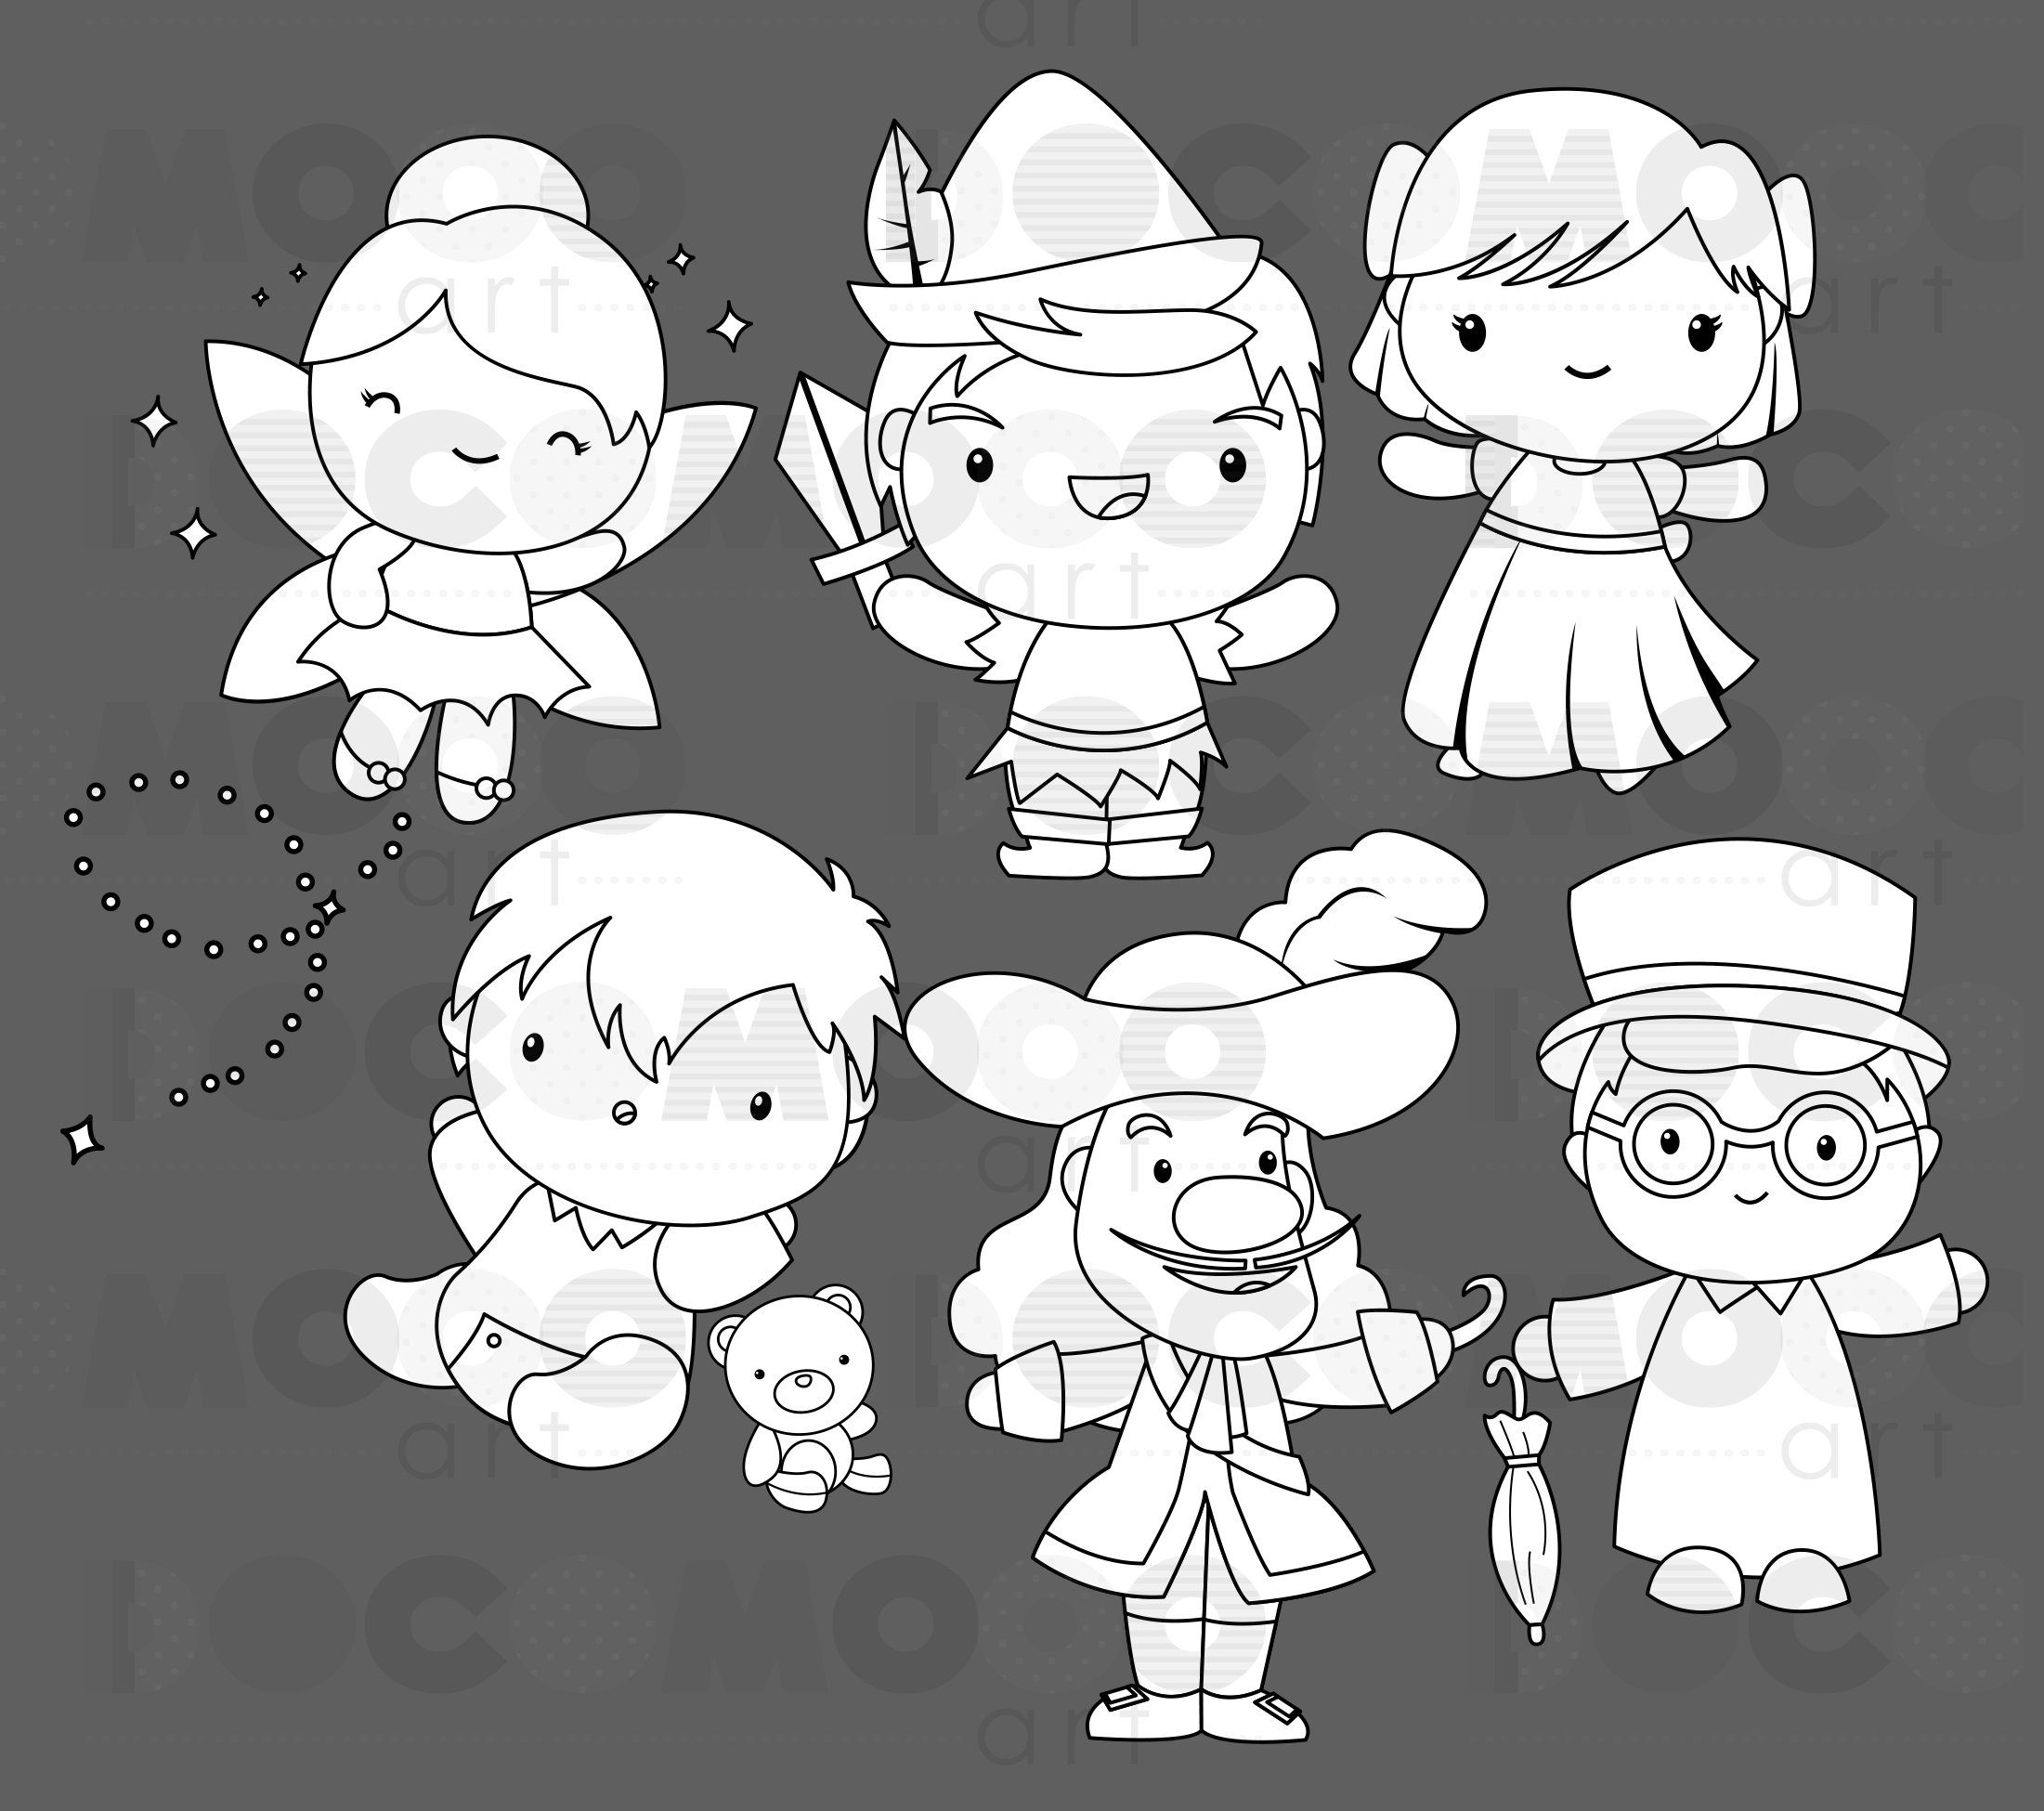 Pirate And Kids Clipart Fantasy Clip Art Black And White Etsy In 2021 Kids Clipart Clip Art Disney Clipart